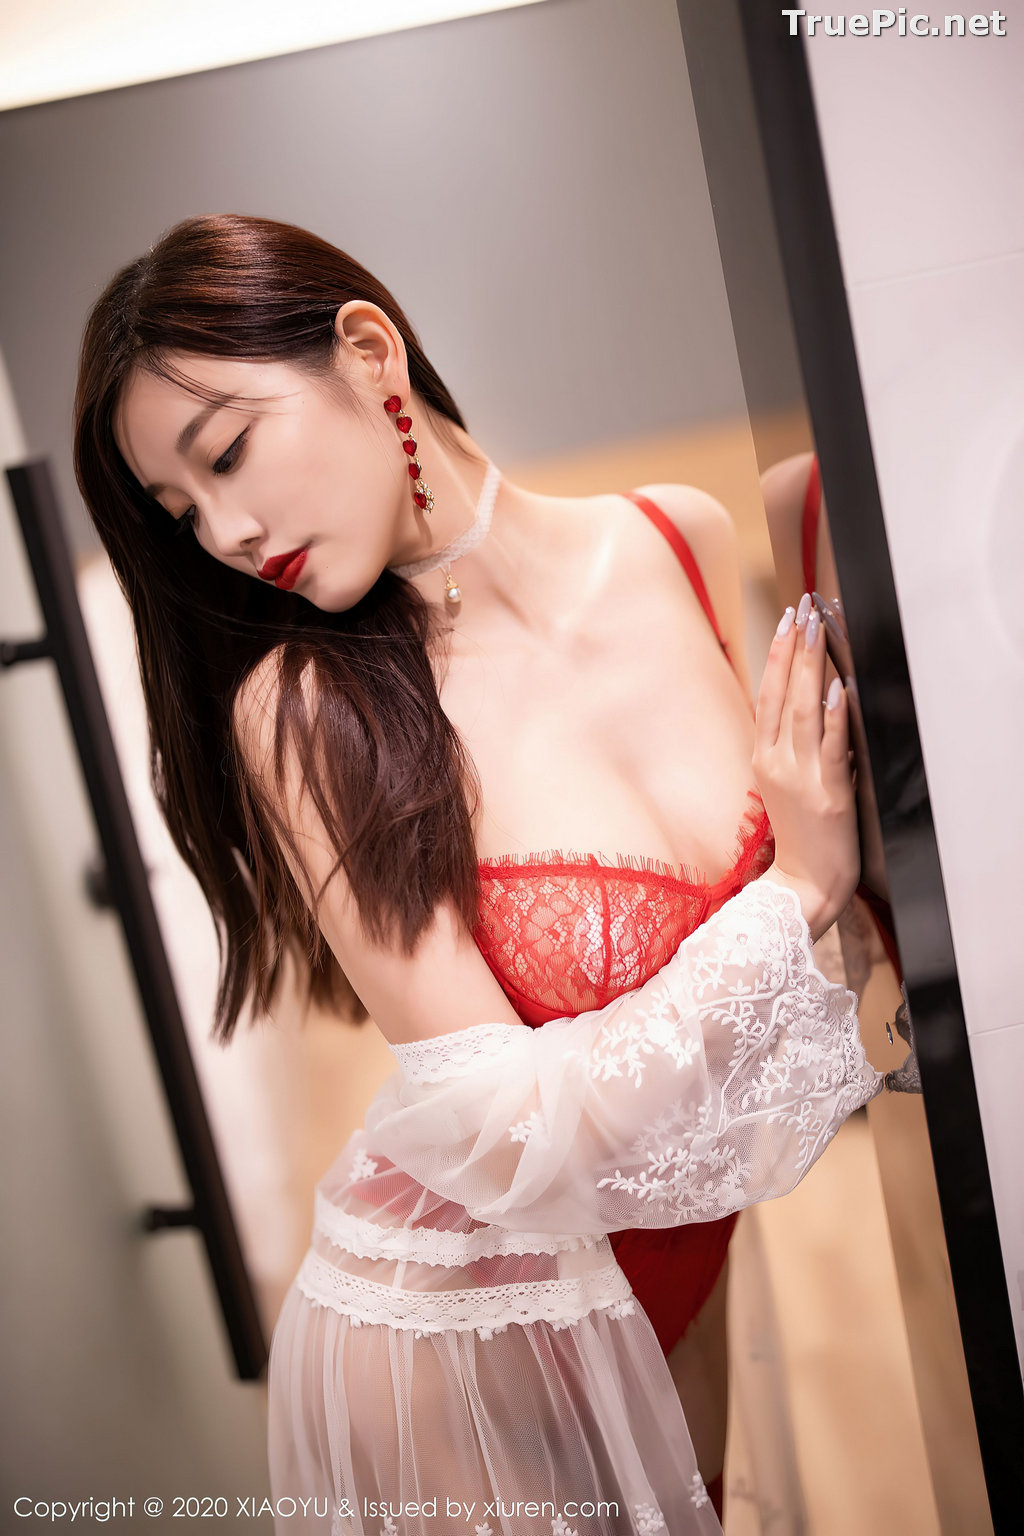 Image XiaoYu Vol.413 - Chinese Model - Yang Chen Chen (杨晨晨sugar)- Red Crystal-clear Lingerie - TruePic.net - Picture-24